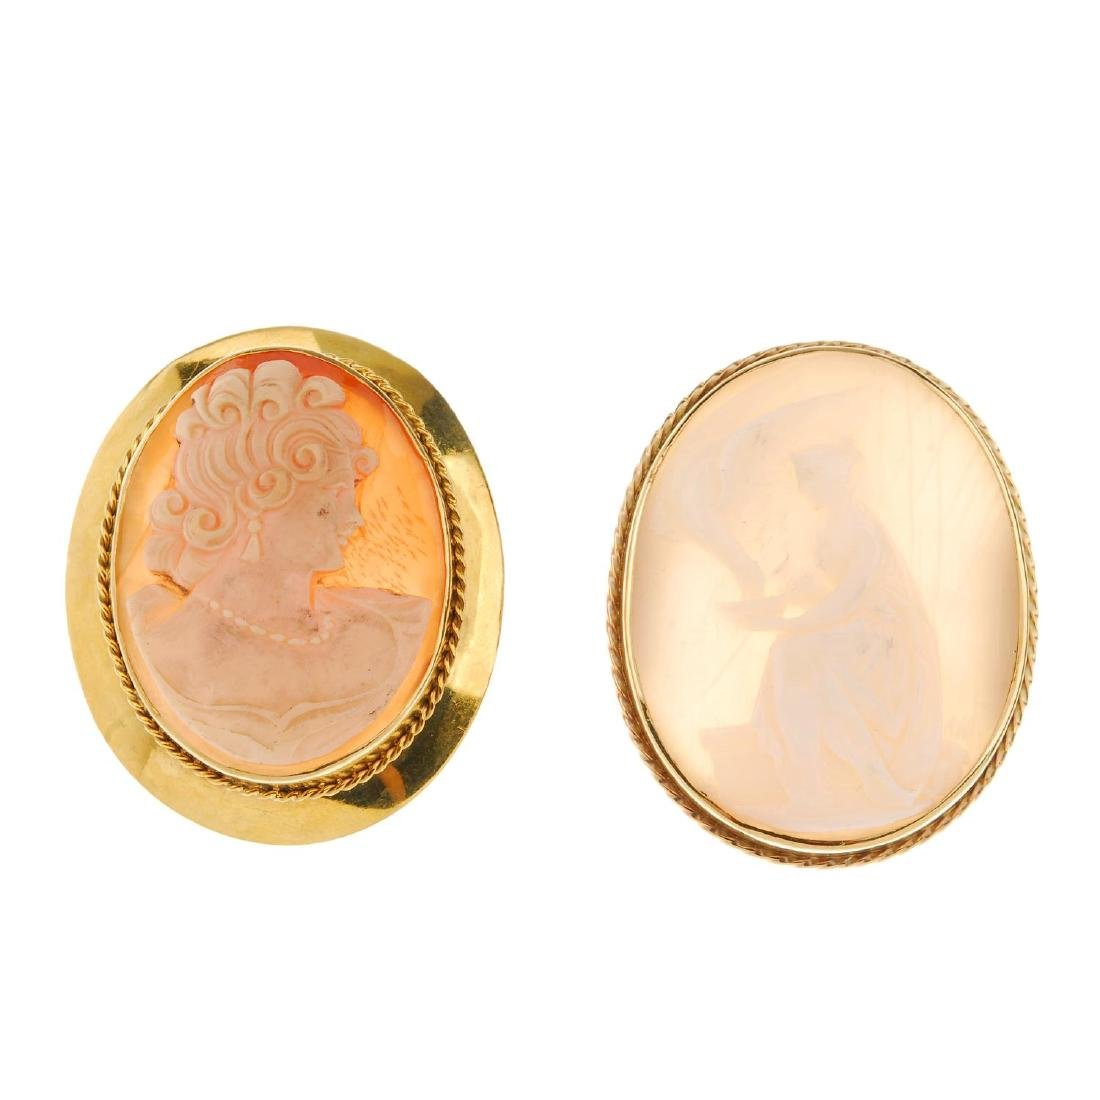 Two cameo brooches. Both of oval outline, the first